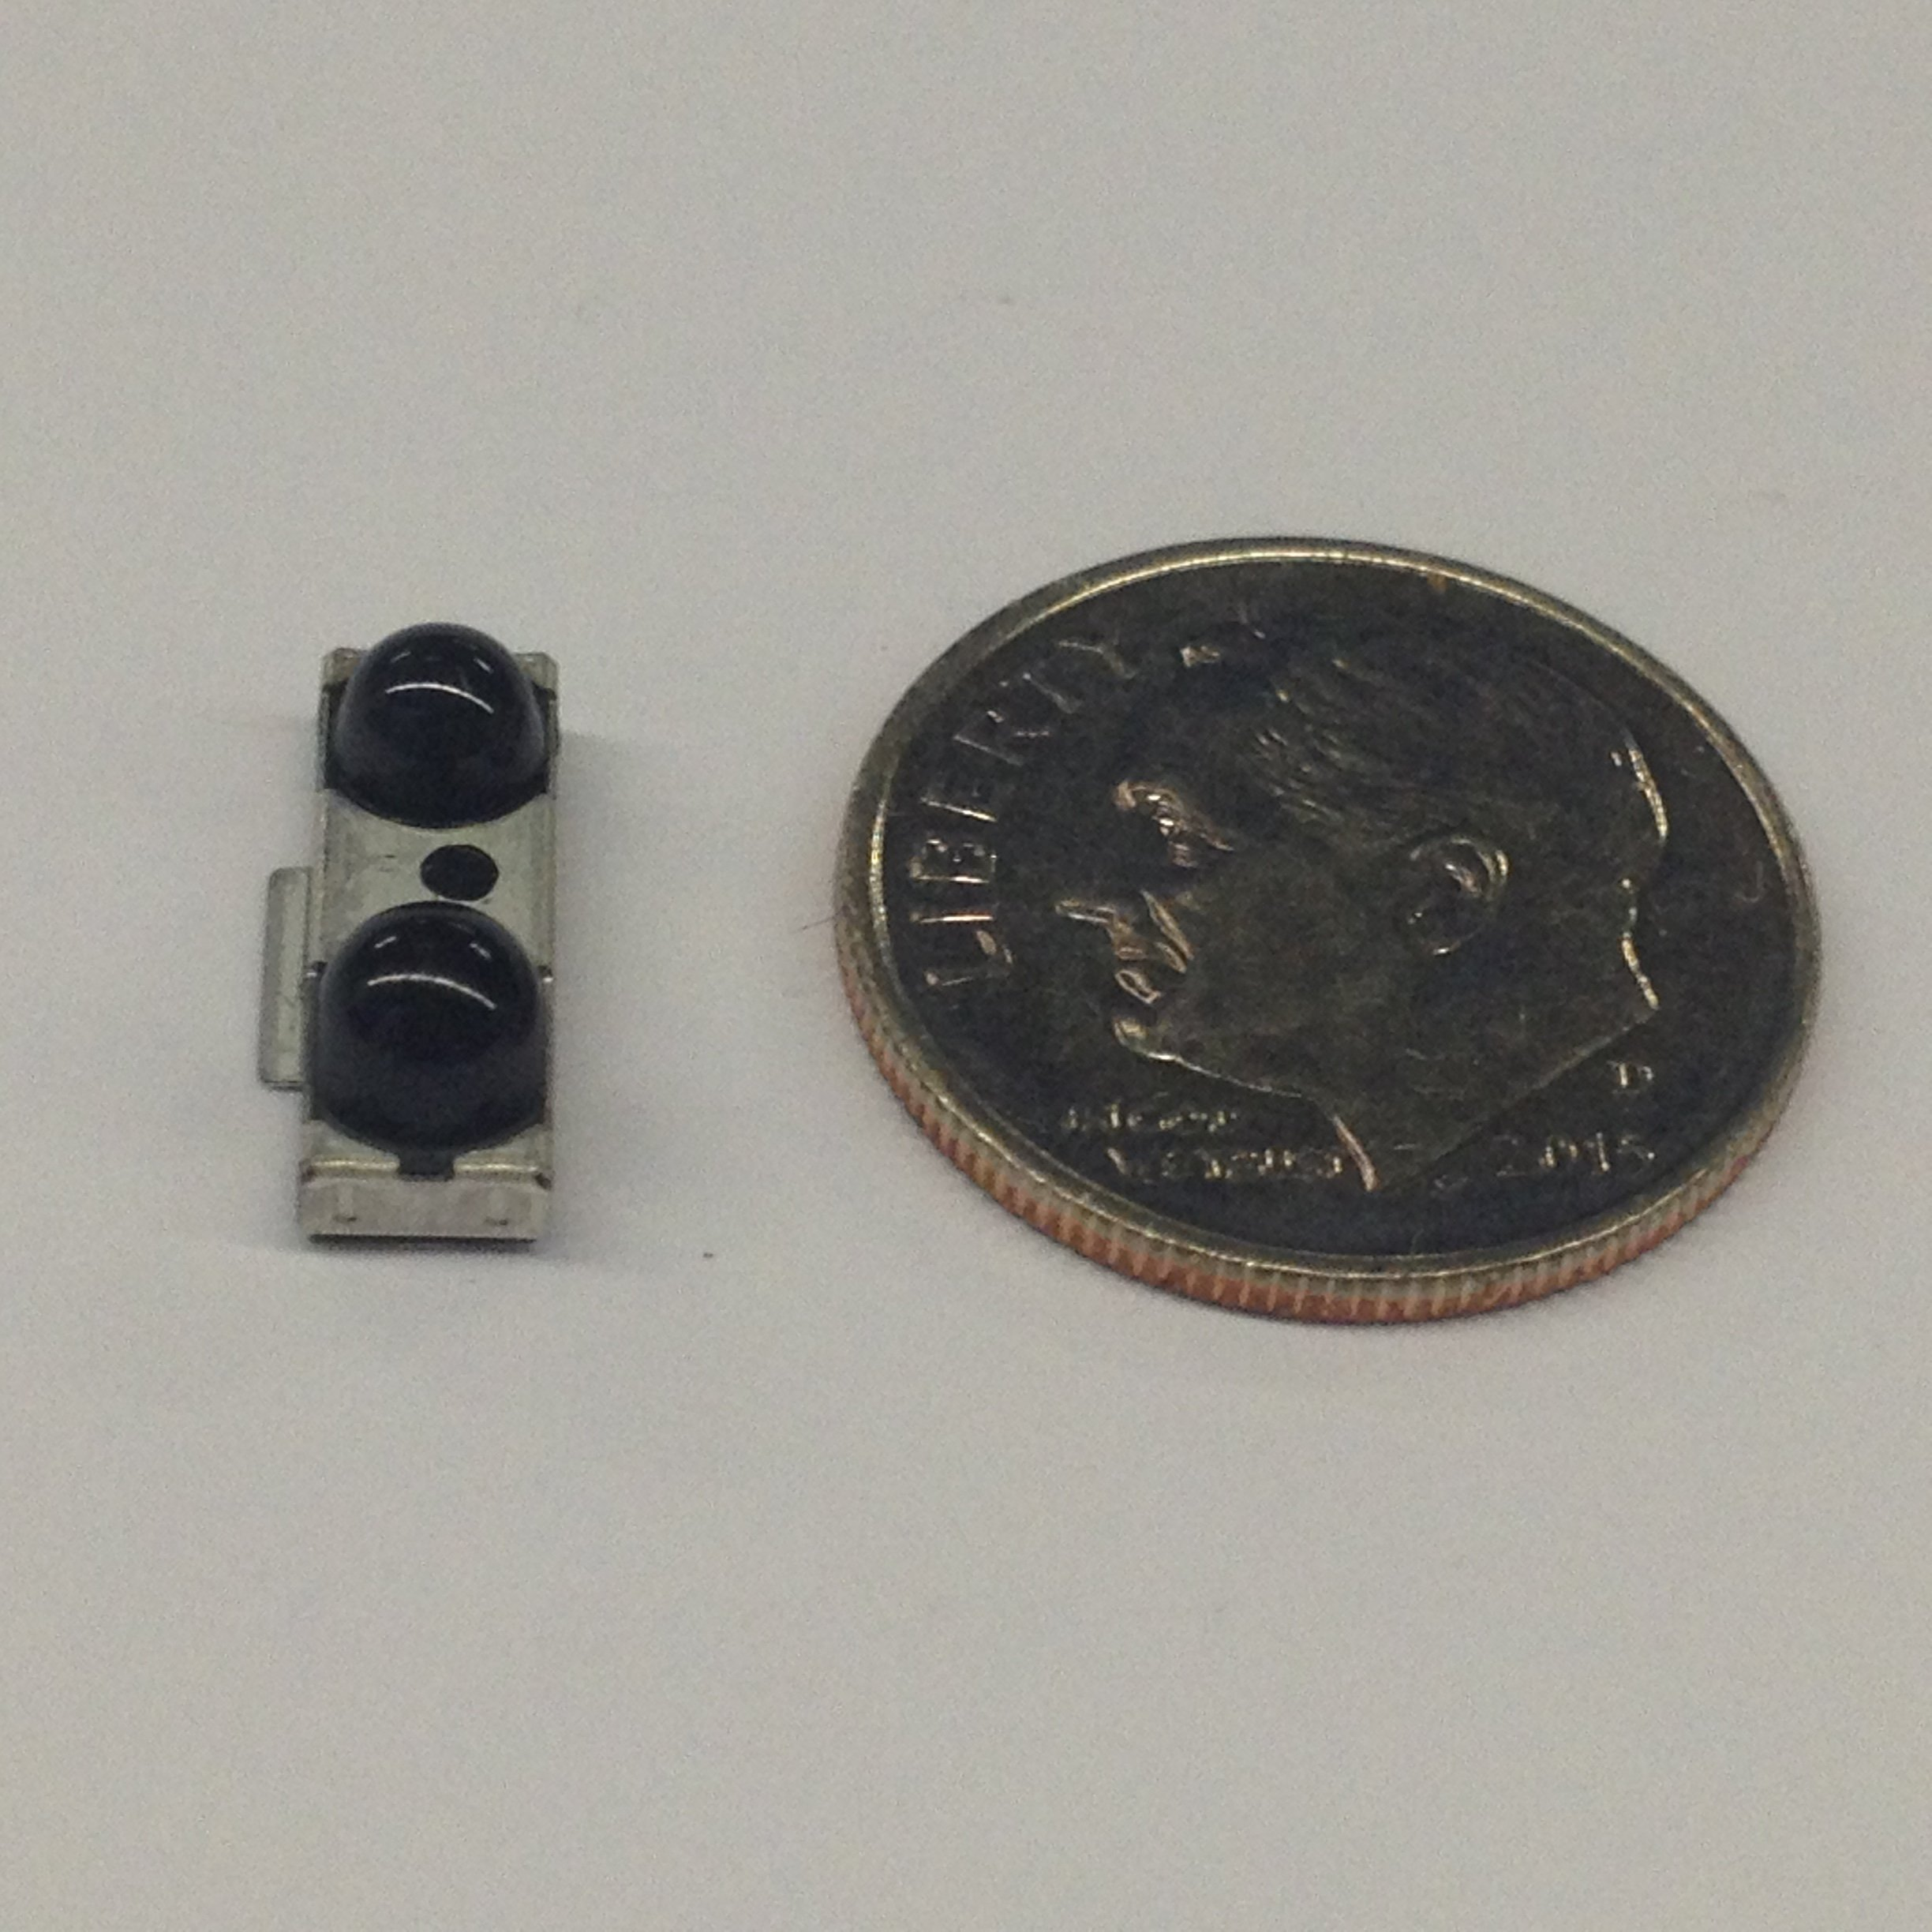 HSDL-3600#008 low-profile infrared transceiver module